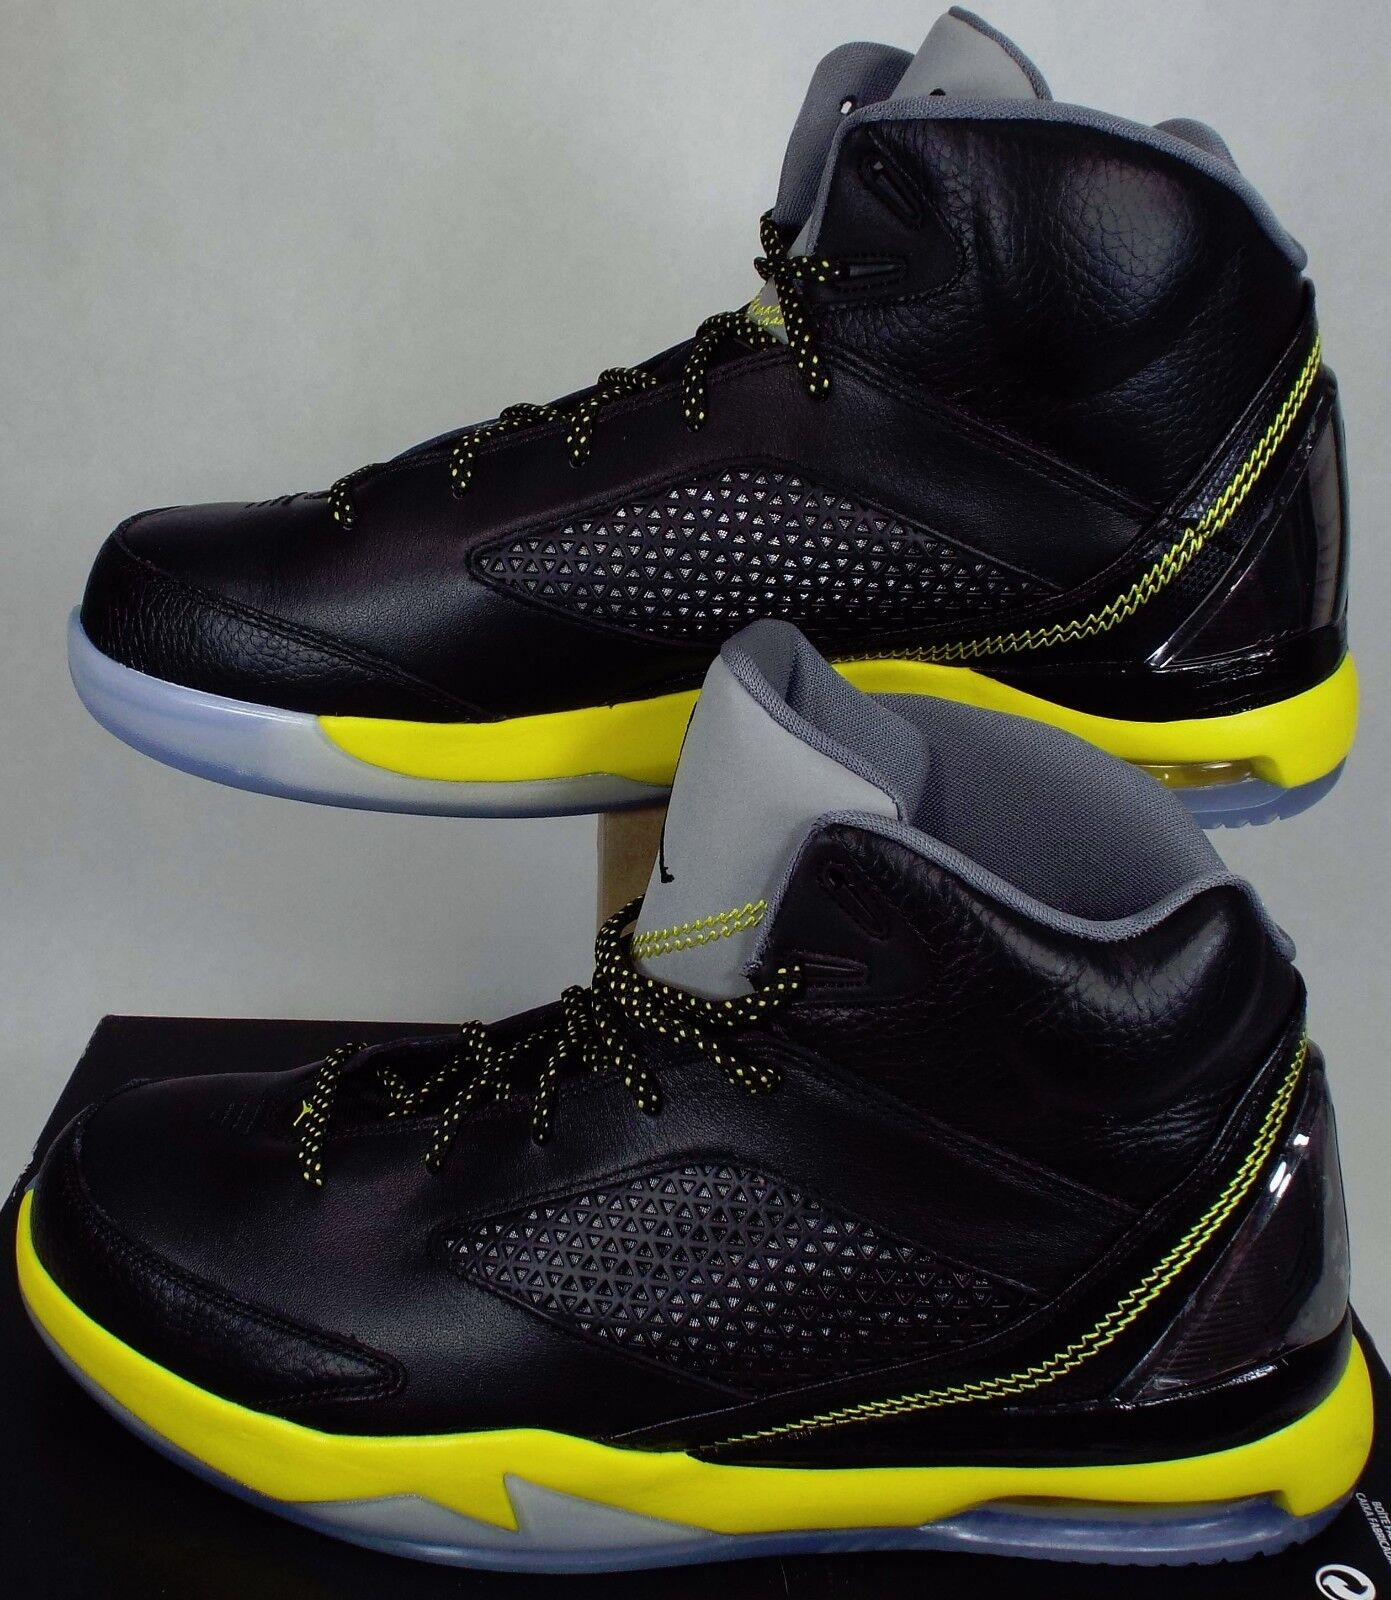 New Mens 13 NIKE Jordan Flight Remix Black Yellow High Shoes 160 679680-070